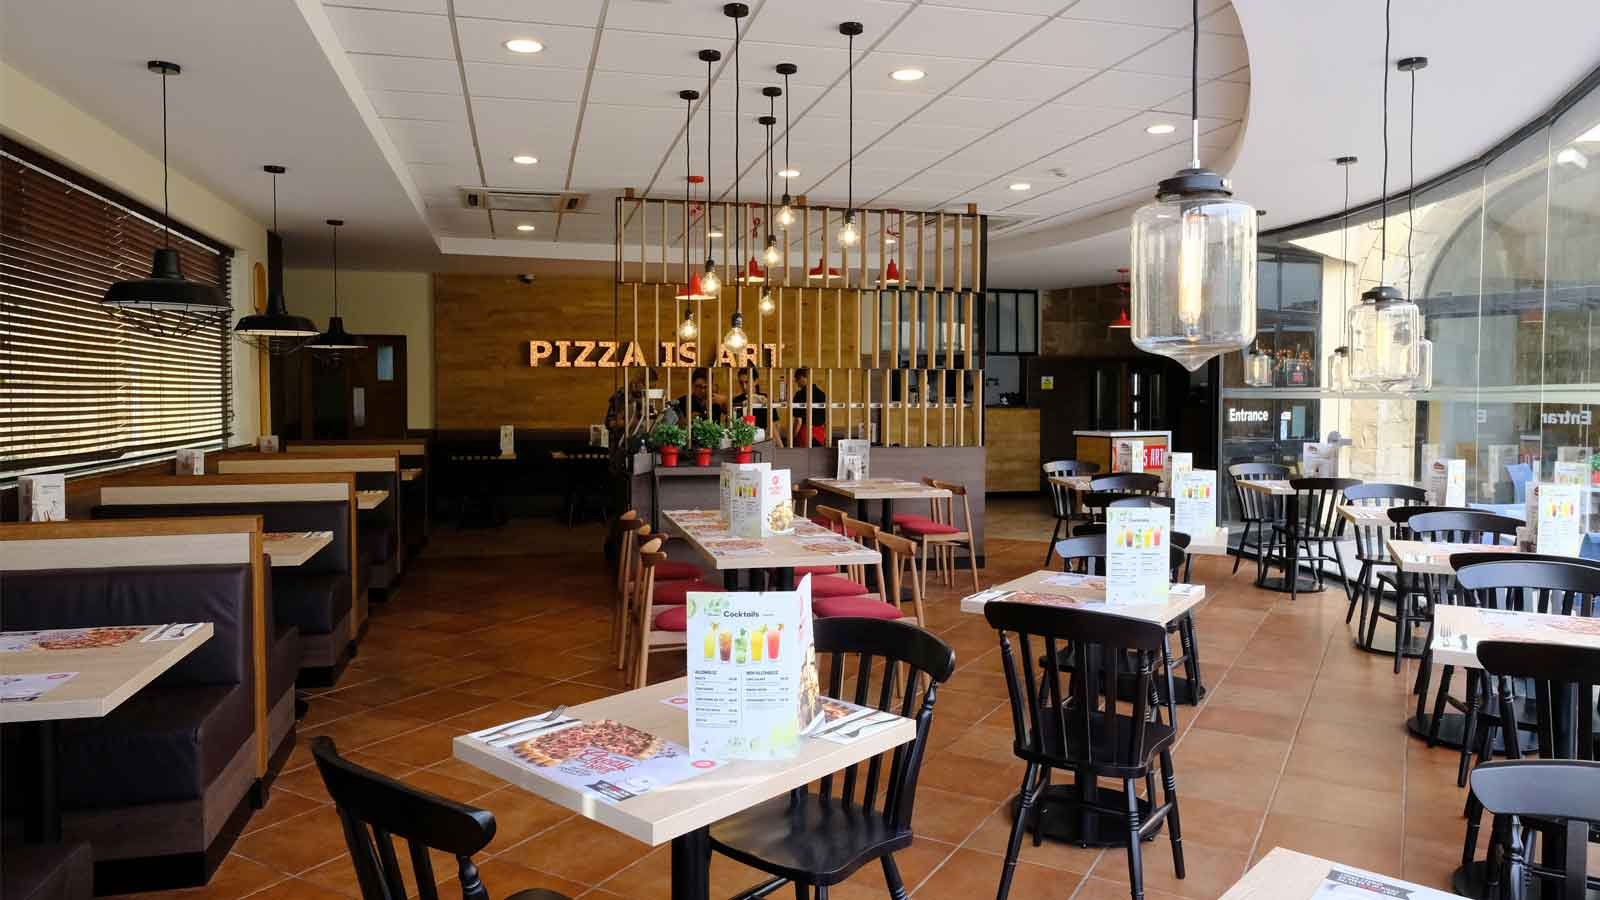 Pizza Hut St Julian's reopens its doors